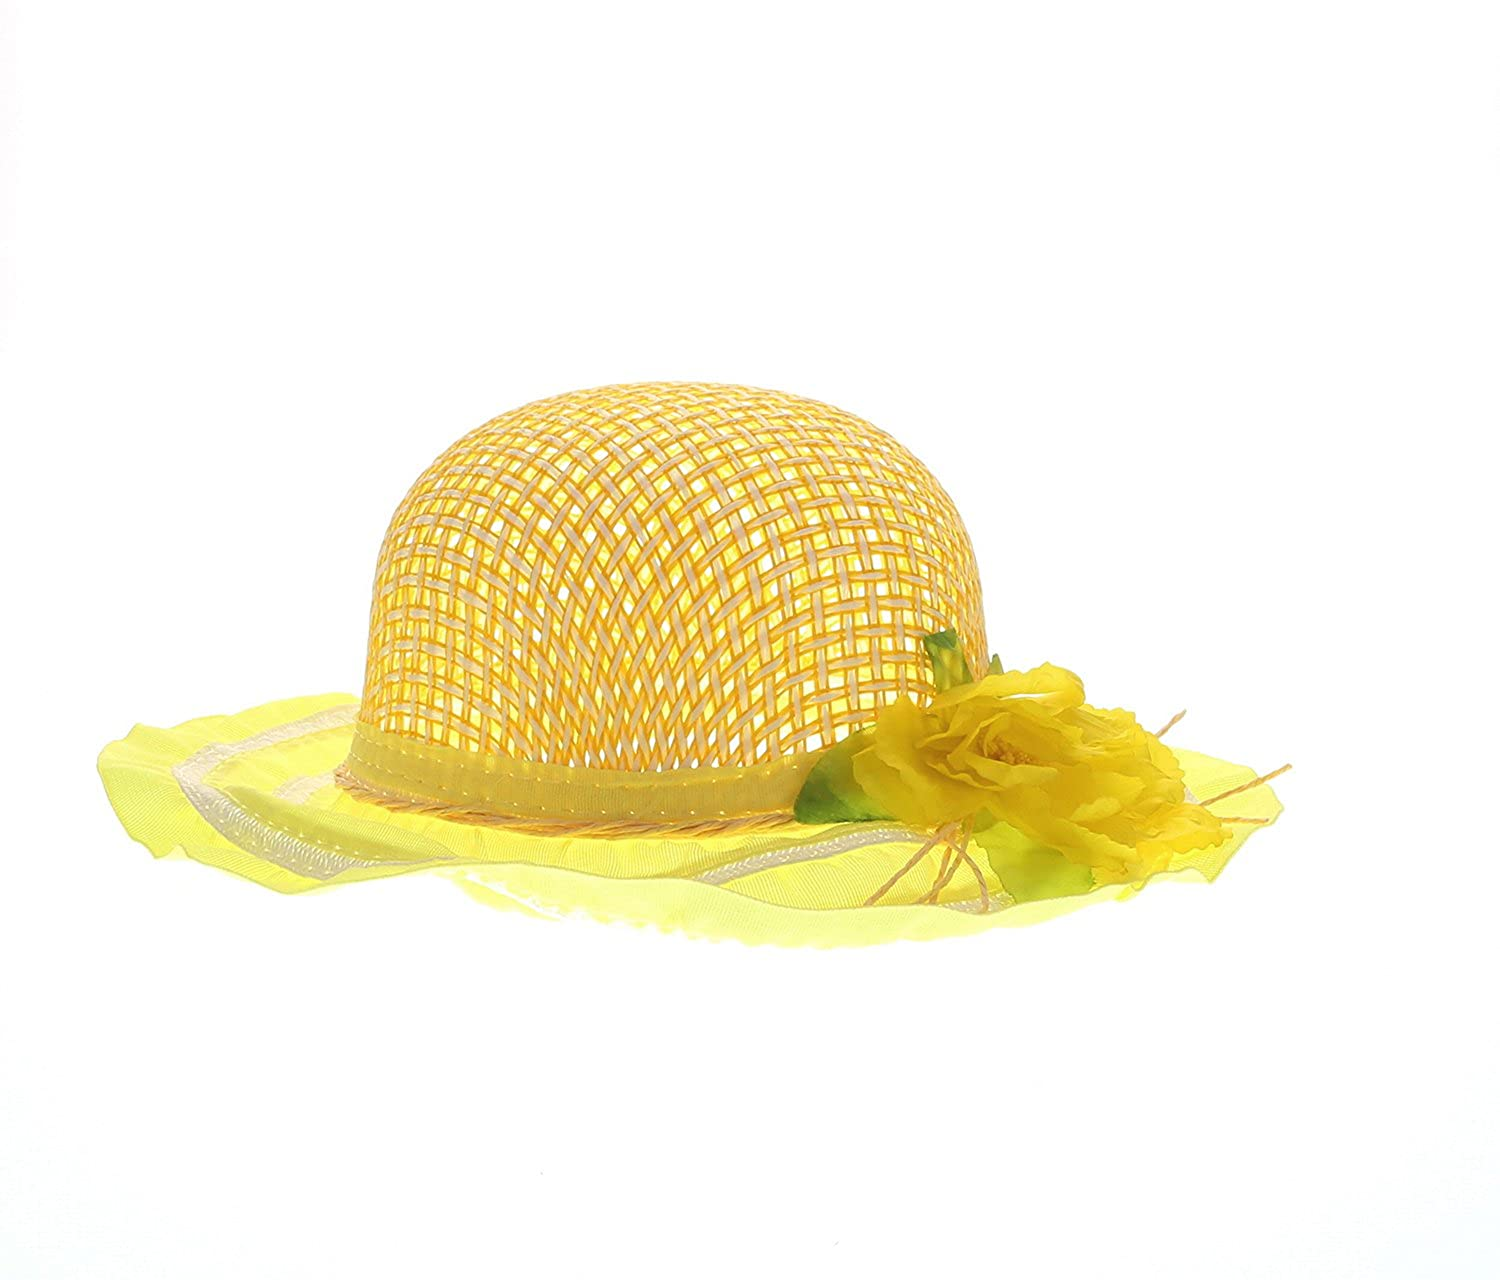 Amazon.com  Mozlly Yellow Tea Party Sun Flower Hat 7.75 Inches Woven Straw  Sun Shade Headpiece - Girl s Fashion Accessory  Clothing 97fa996185a